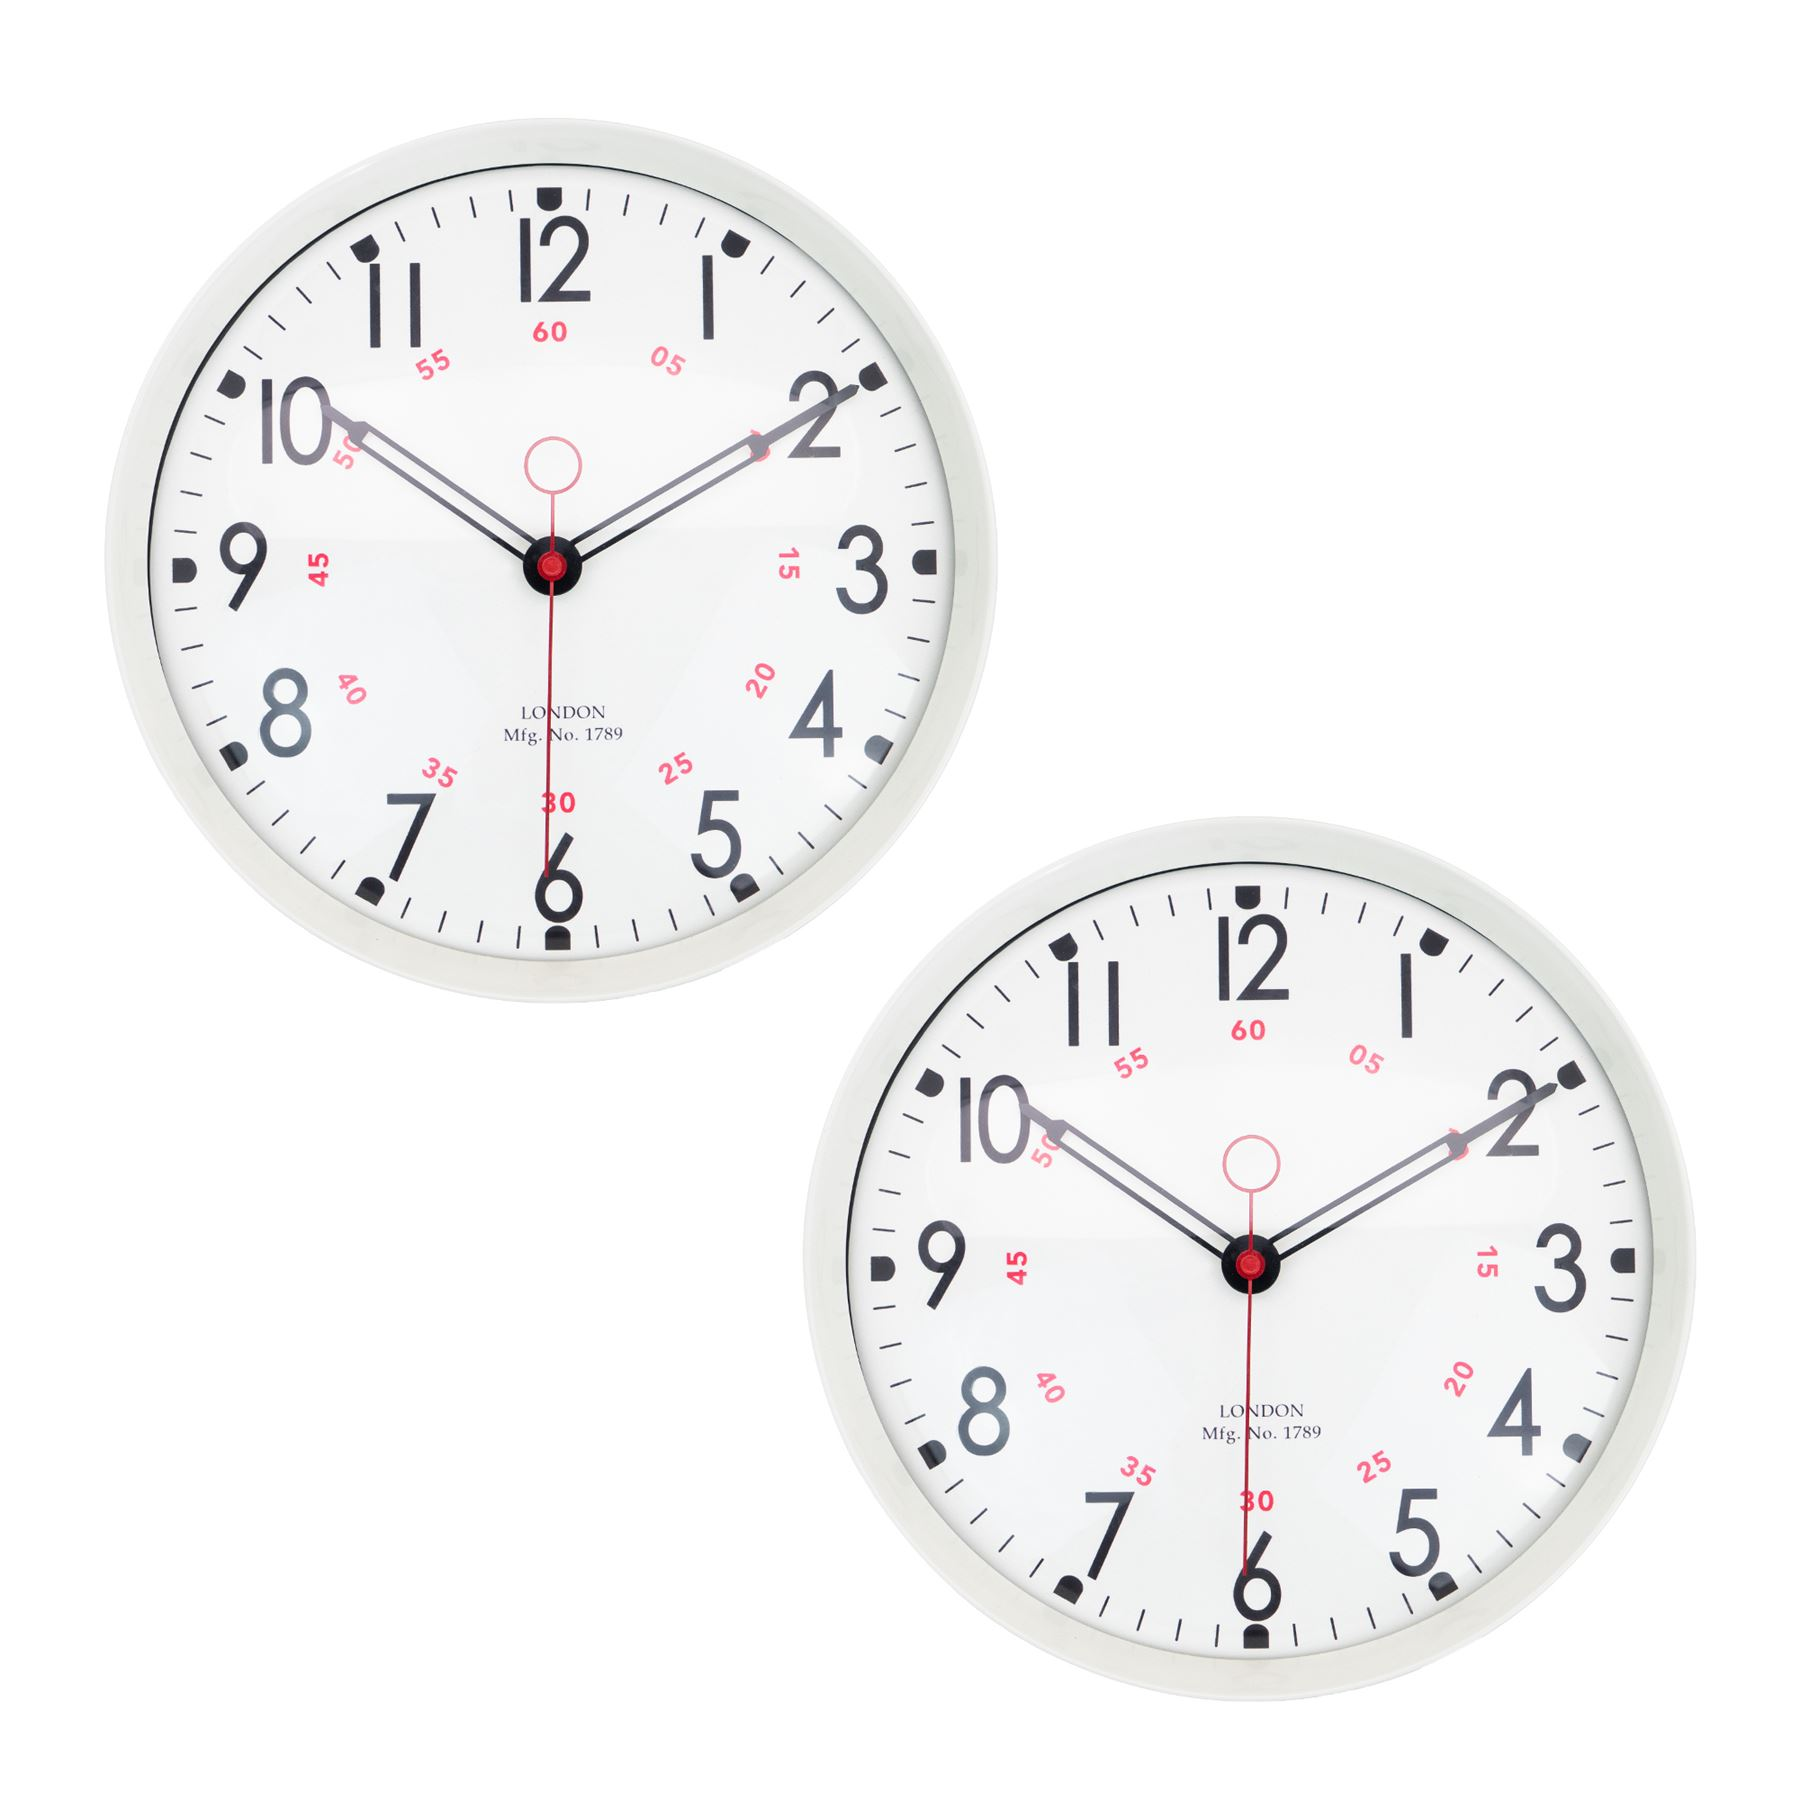 Metal Wall Clock Retro Large Round Home Office Bedroom